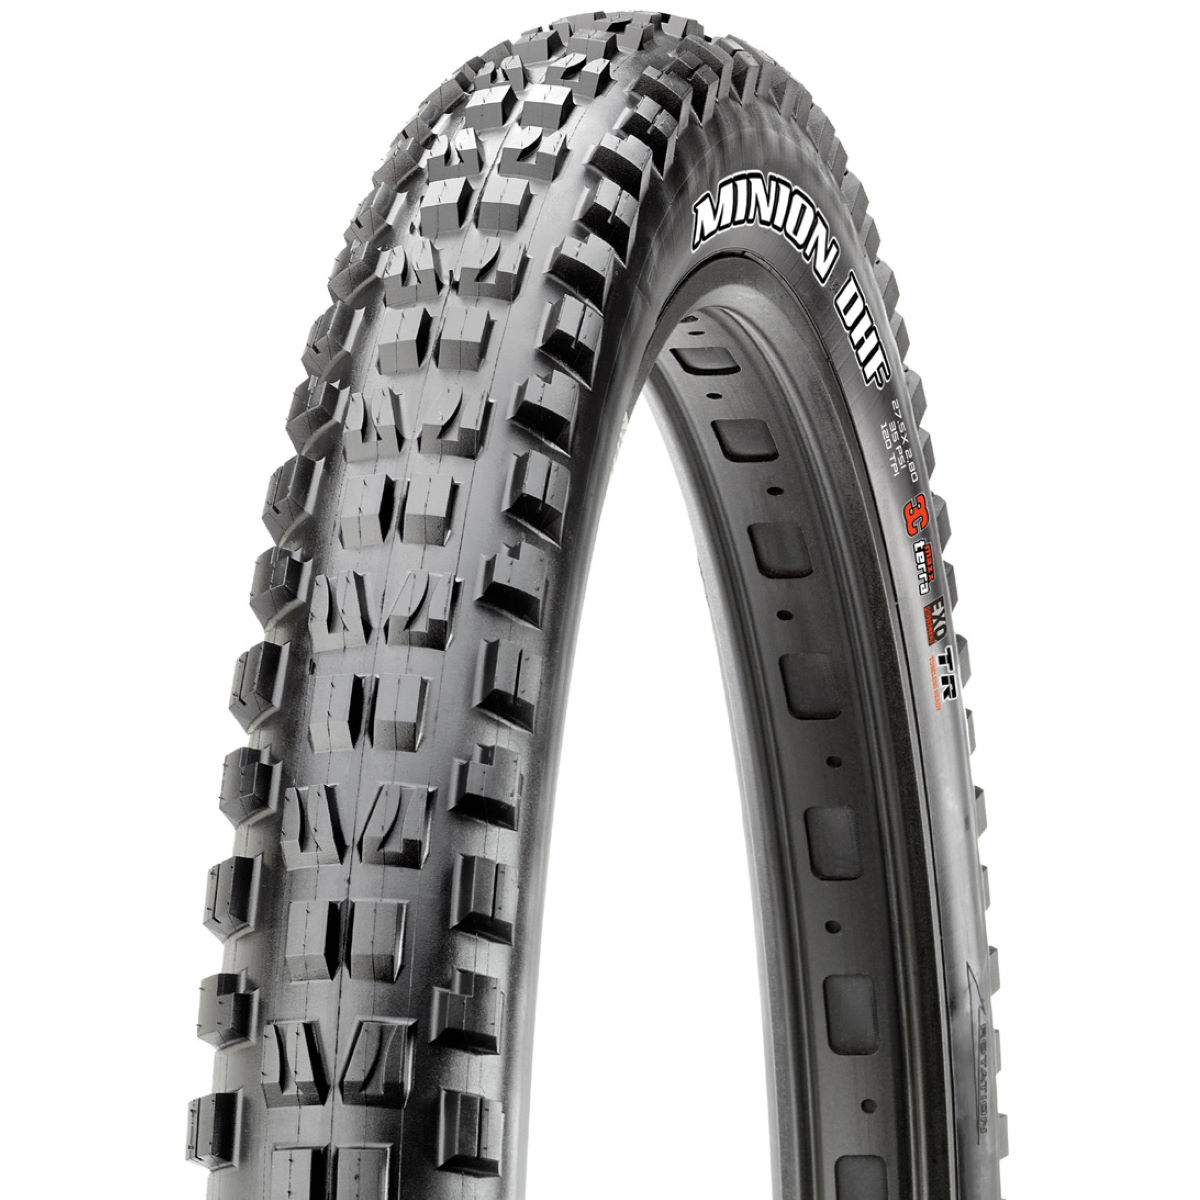 Maxxis Maxxis Minion DHF+ MTB WT Tyre - 3C - EXO+ - TR   Tyres